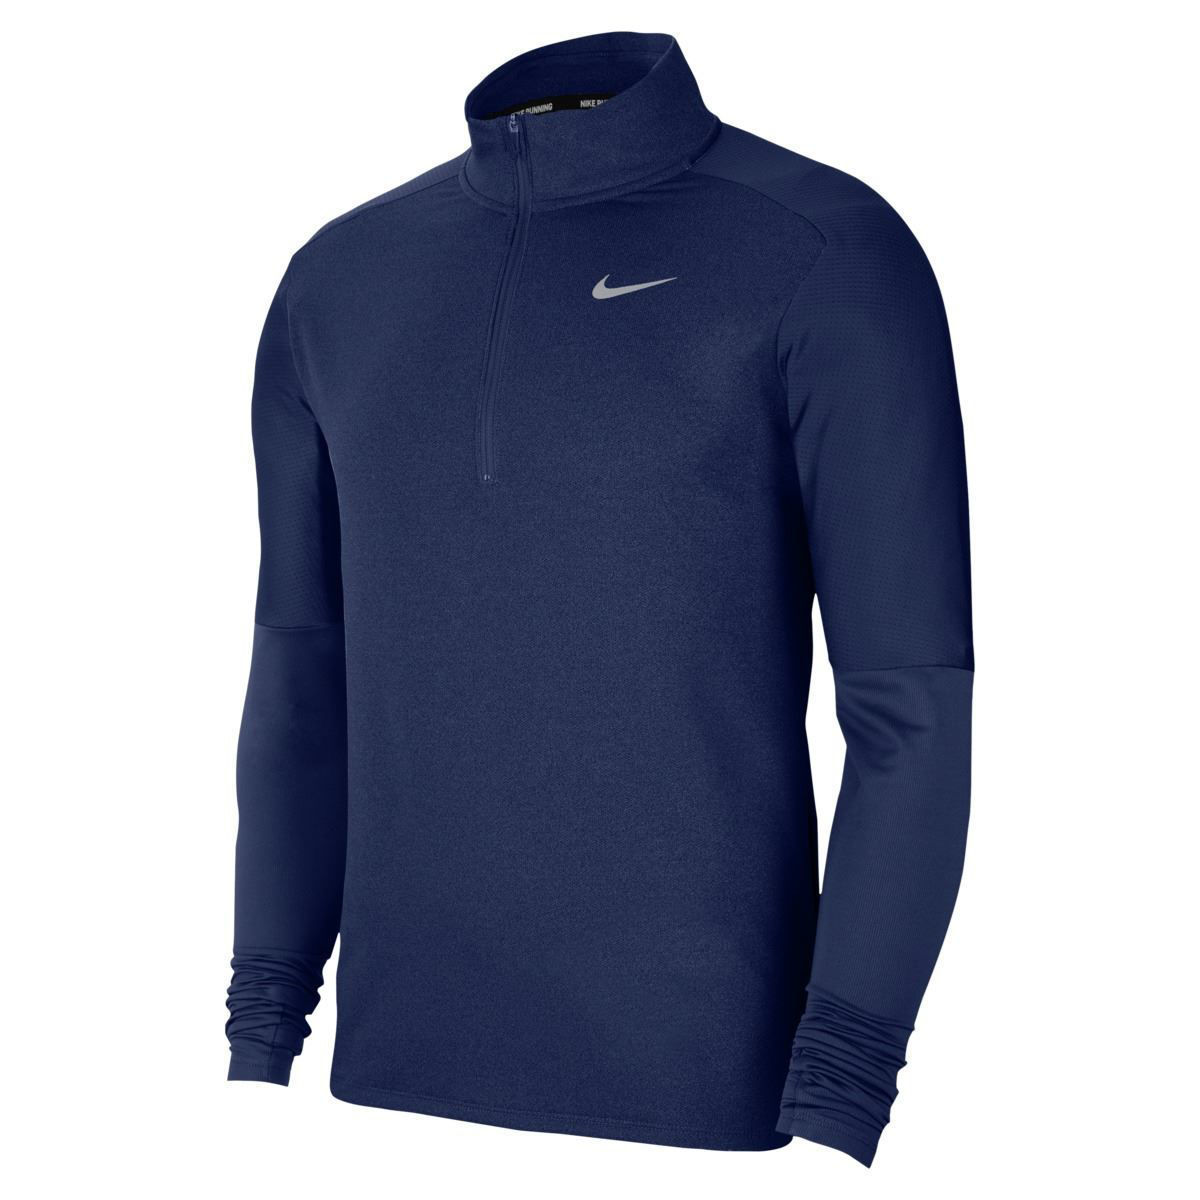 Bilde av Dri-FIT Element Men's